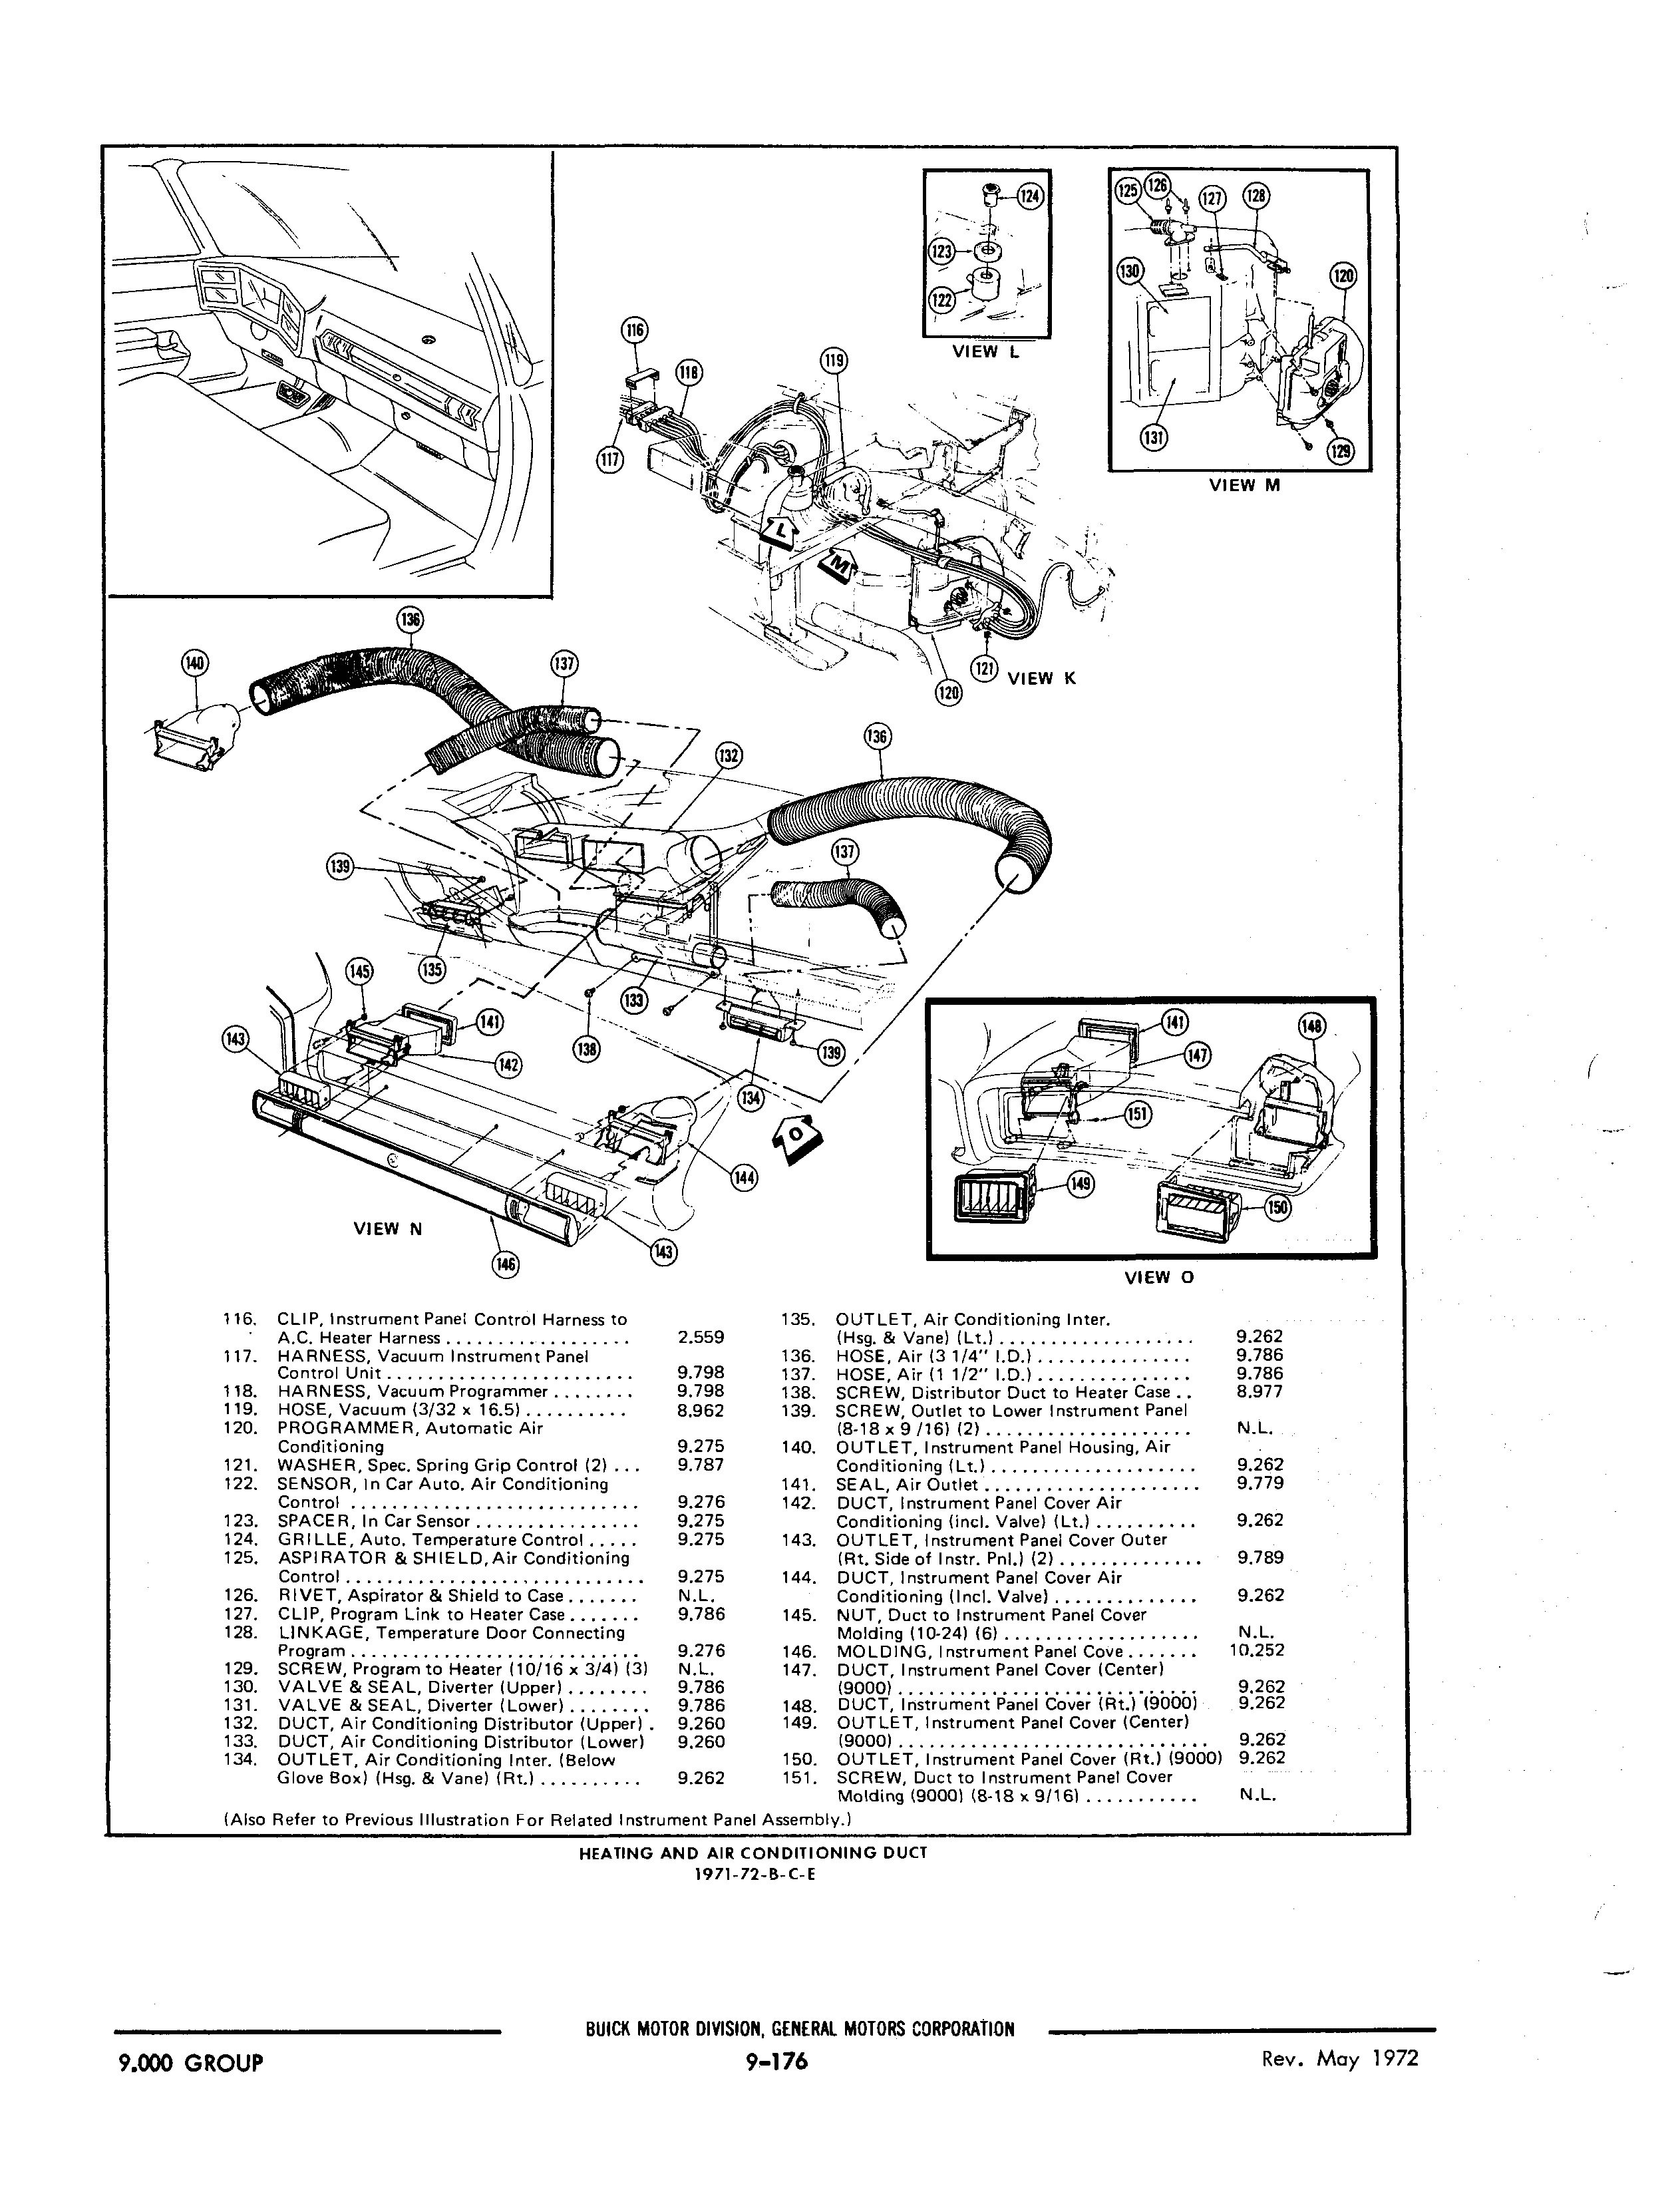 1951 ford heater diagram